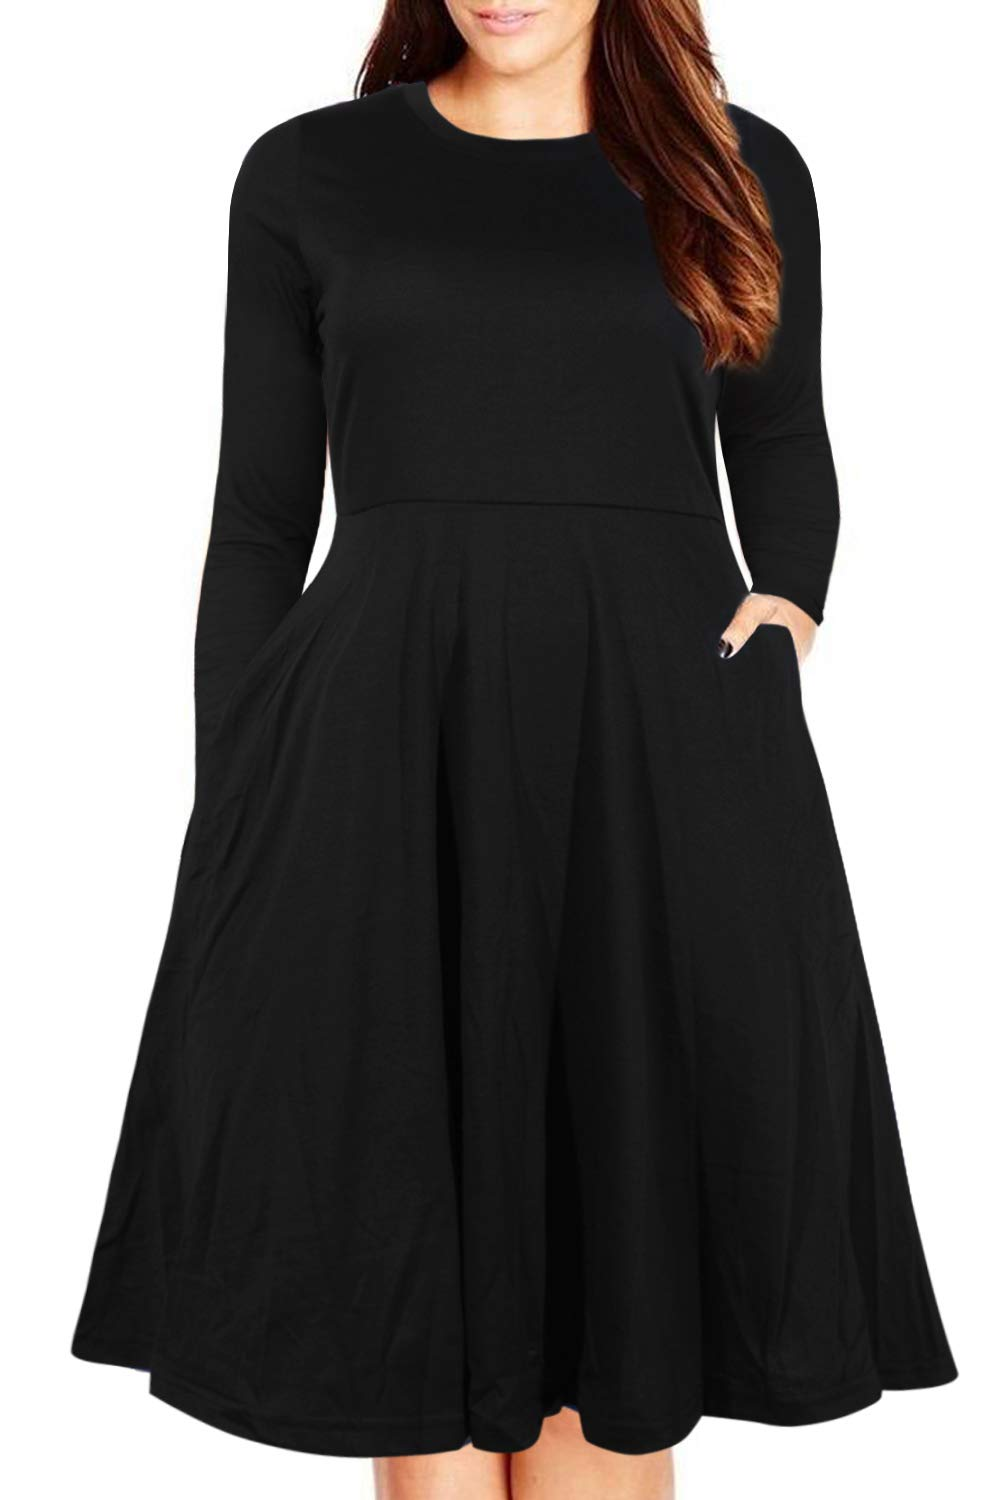 9832072af Nemidor Women's Round Neck Summer Casual Plus Size Fit and Flare Midi Dress  with Pocket. Spread the love. 🔍. Amazon.com ...